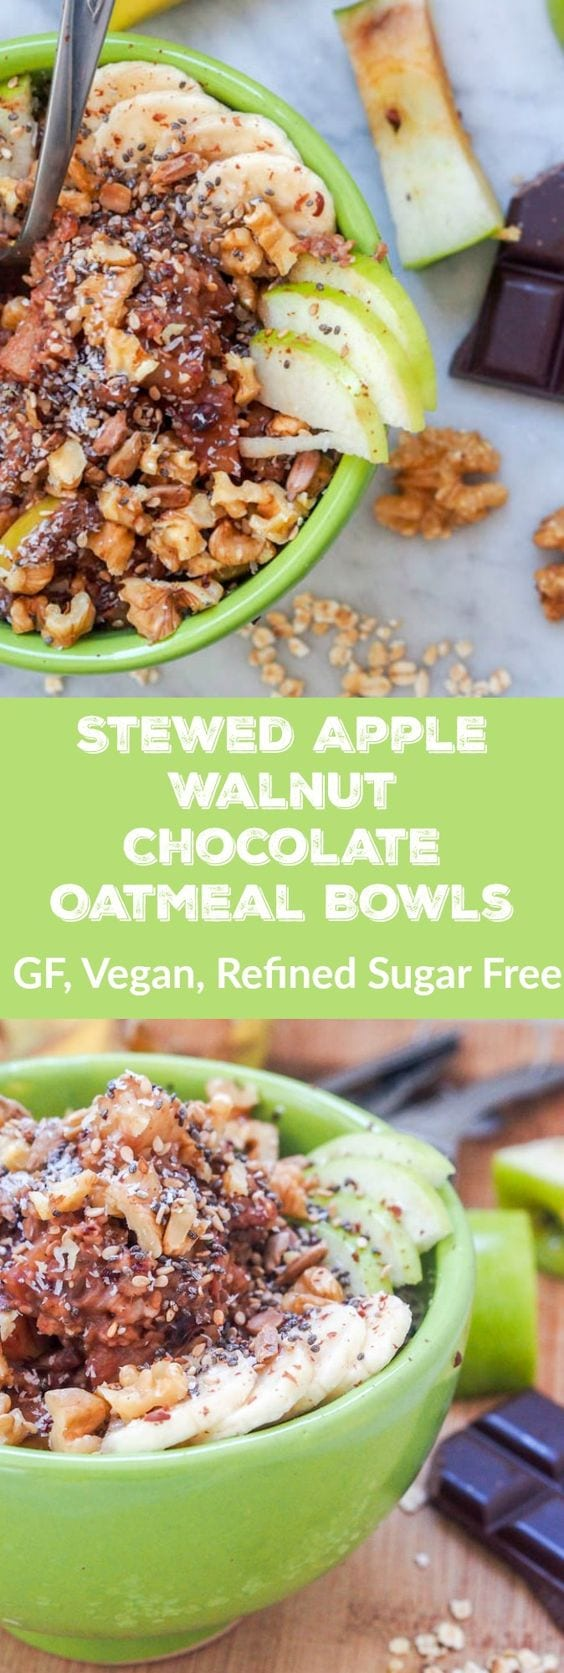 Chocolate Oatmeal with Stewed Apple Walnut is about to be your new favorite power breakfast. Stewed and caramelized diced apples and bananas mixed with oatmeal, chia, sesame, and sunflower seeds for a healthy and delicious sweet breakfast. Naturally sweetened with dark chocolate and topped with crunchy walnuts. GF, Vegan and Refined Sugar Free. 8 g of protein and 11 g of fiber per serving. You might even think you're eating dessert. #breakfast #vegan #oatmeal #healthy #chocolate